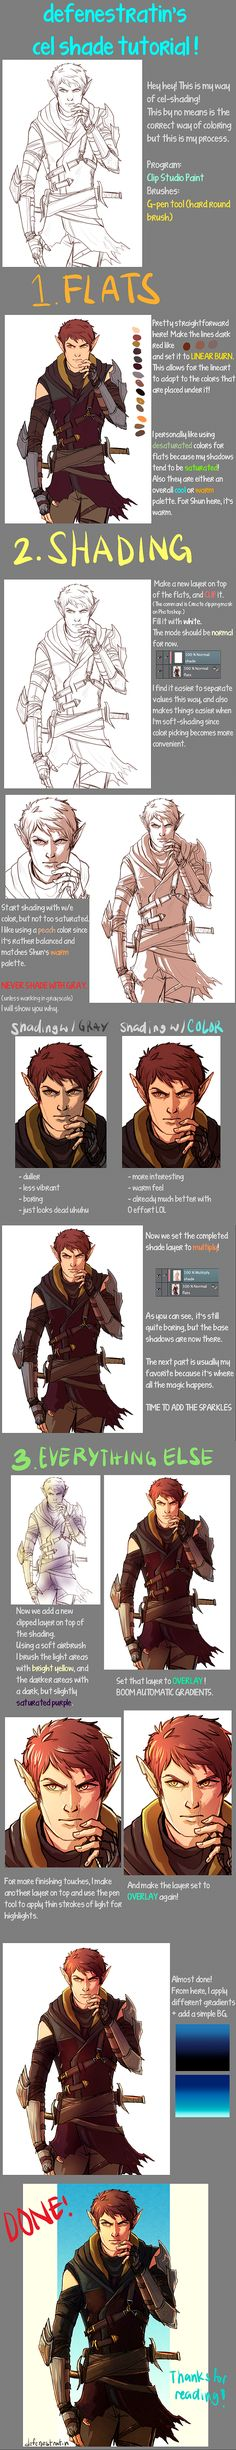 How I cel shade things! by defenestratin.deviantart.com on @DeviantArt